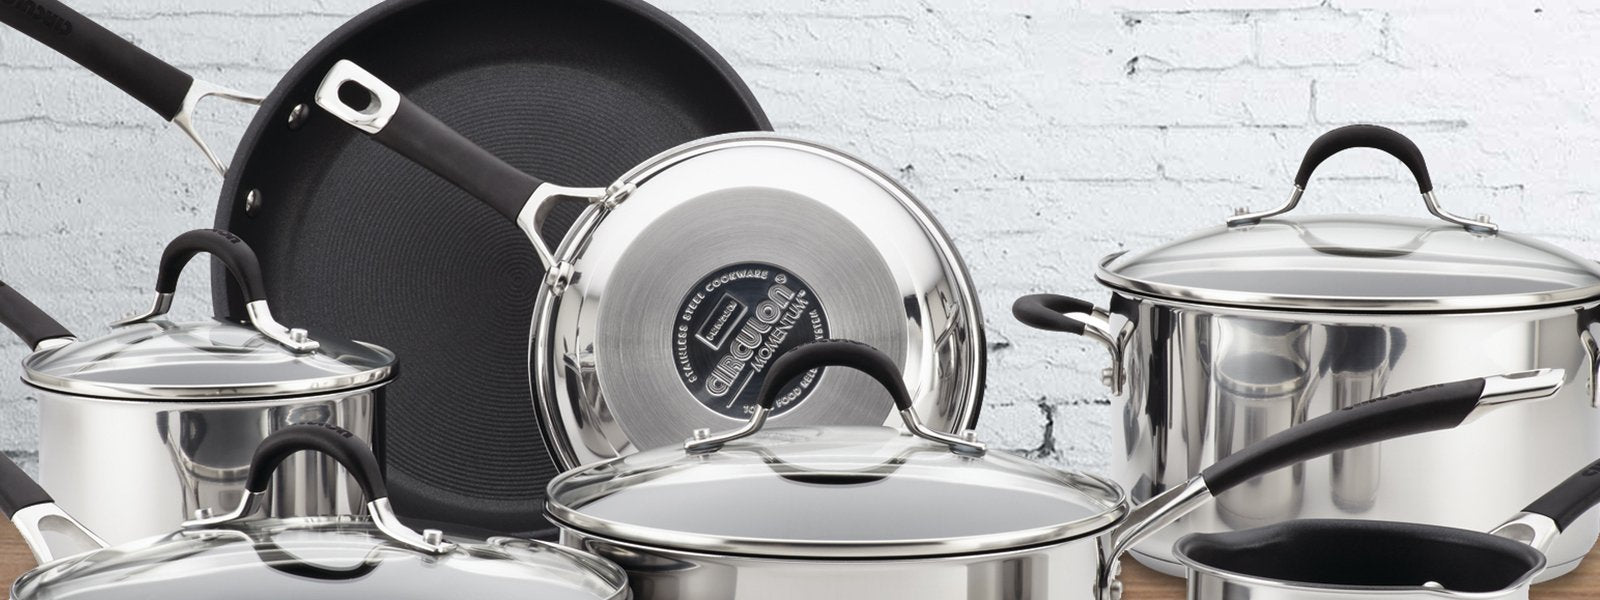 "Stainless Steel Cookware- "" Your companion for lifetime"""